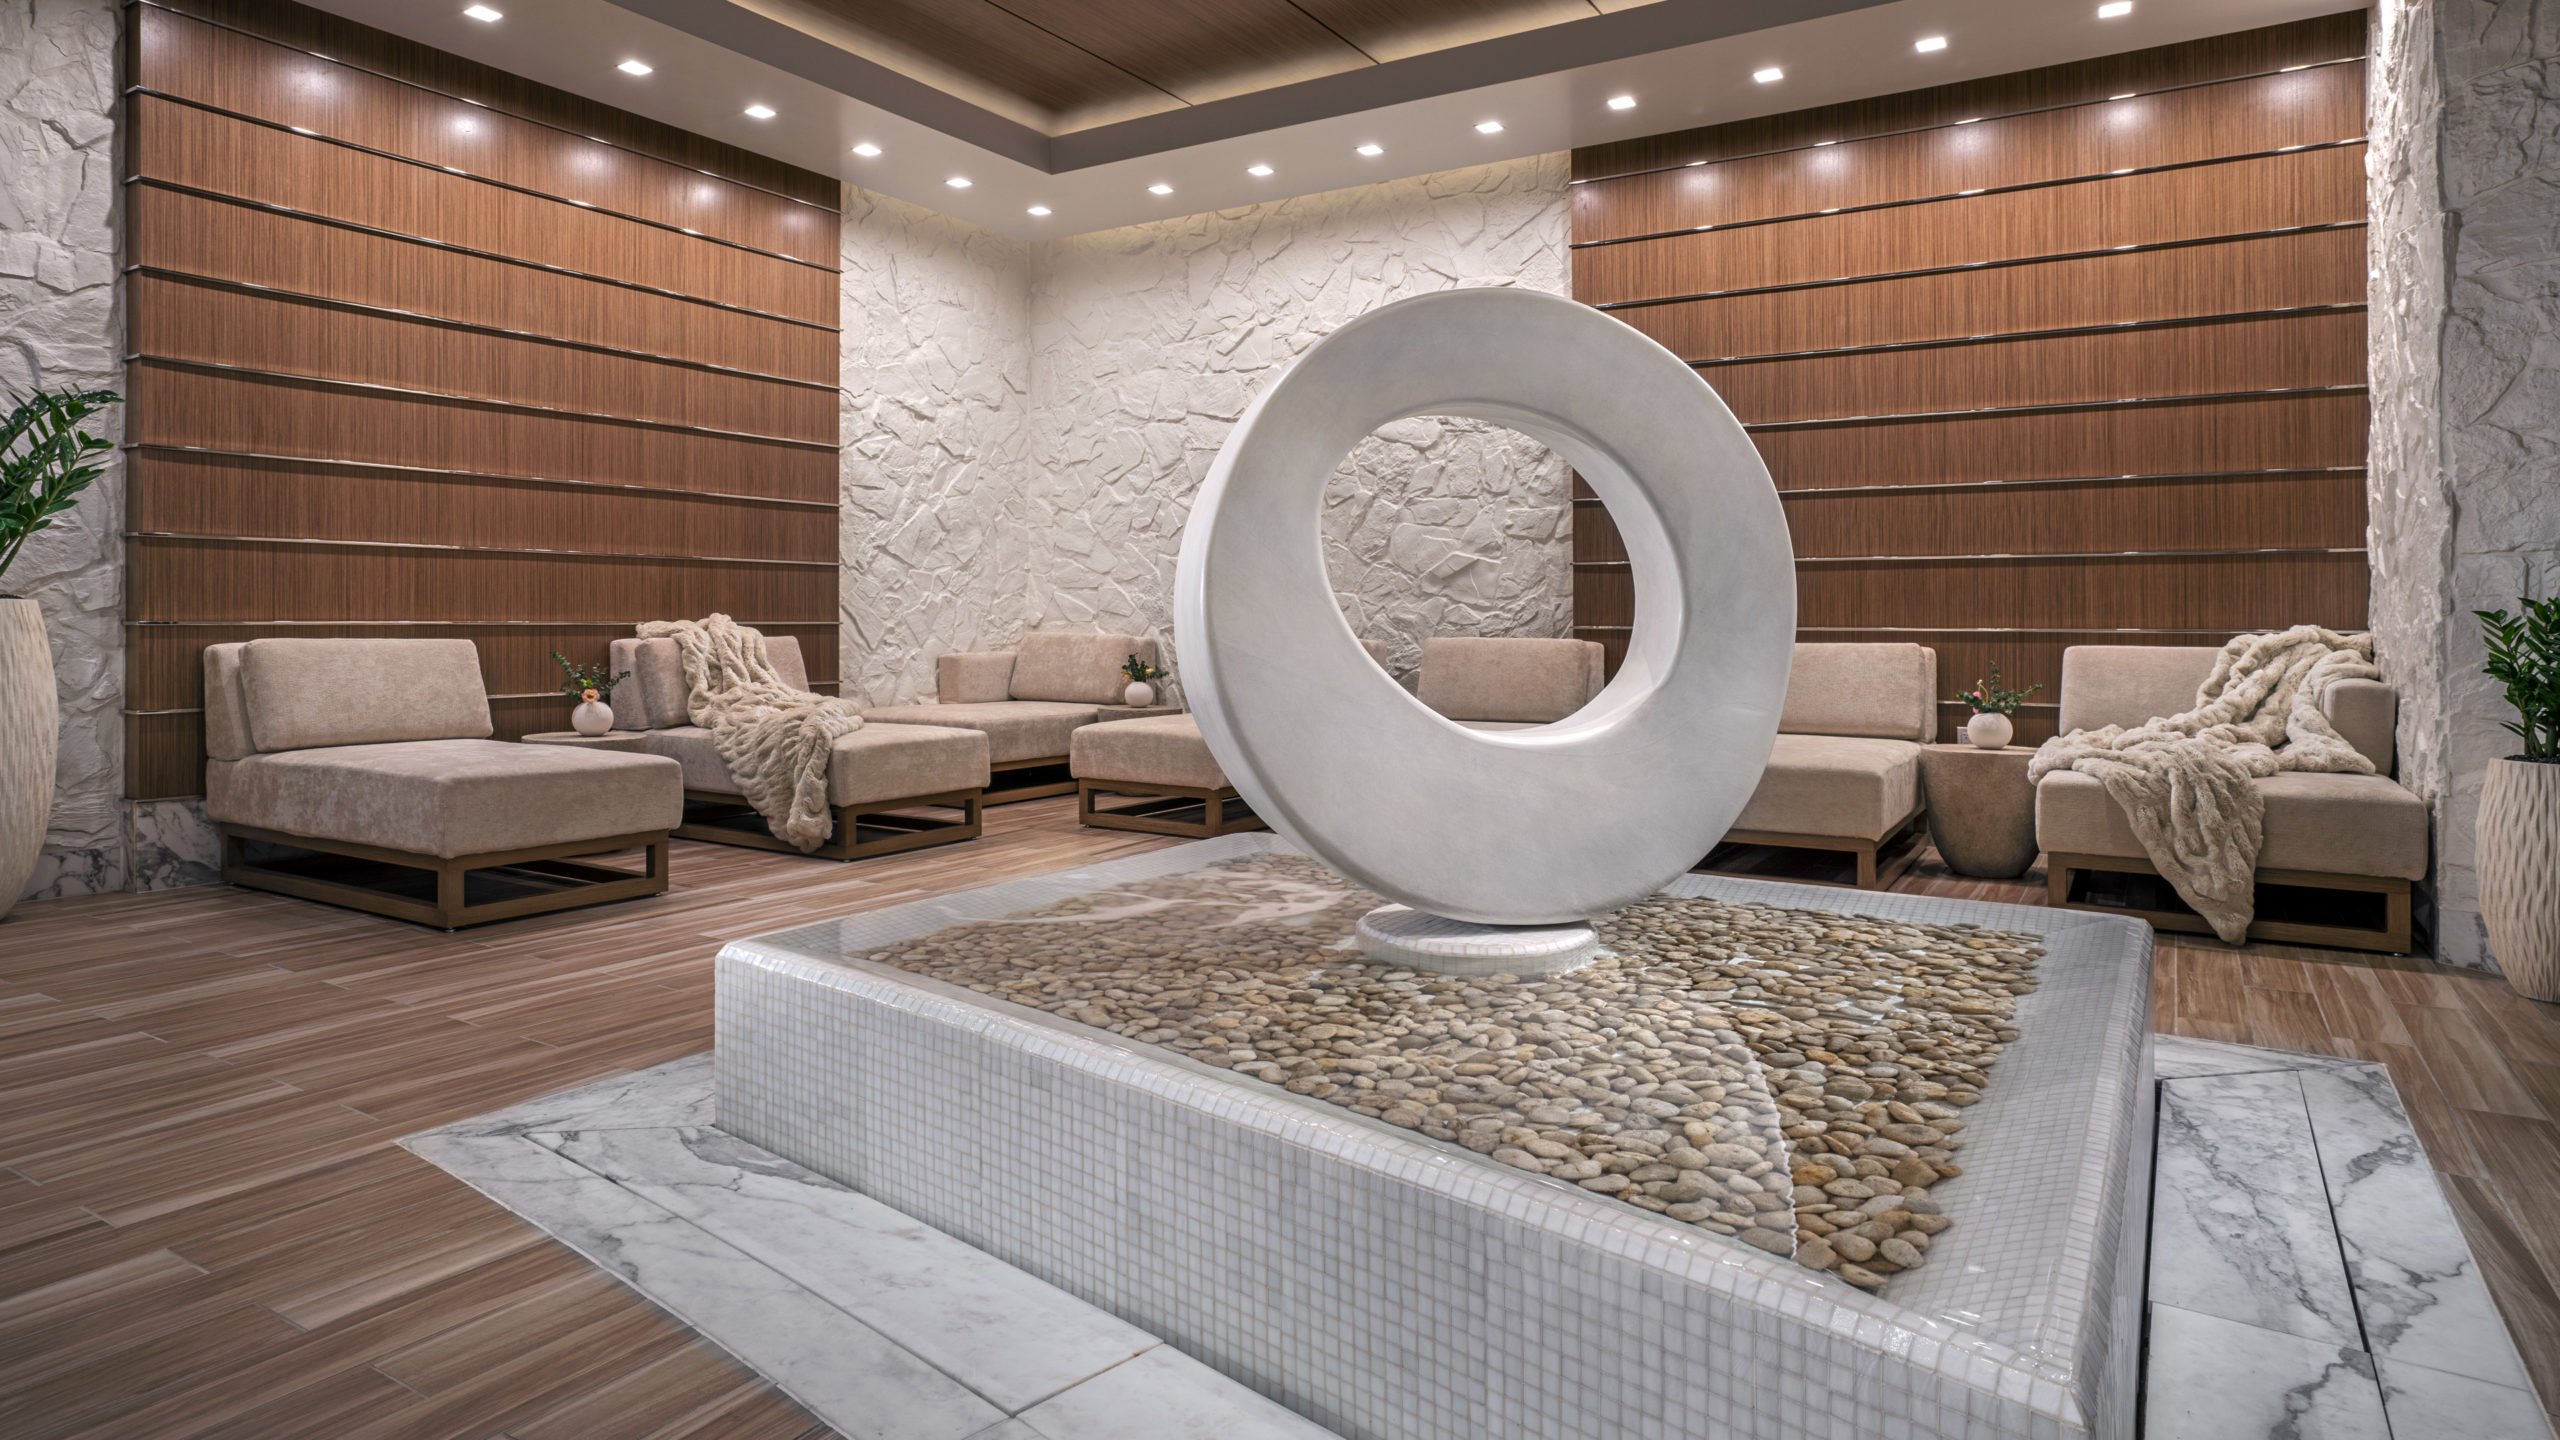 an image of the lobby at the spa